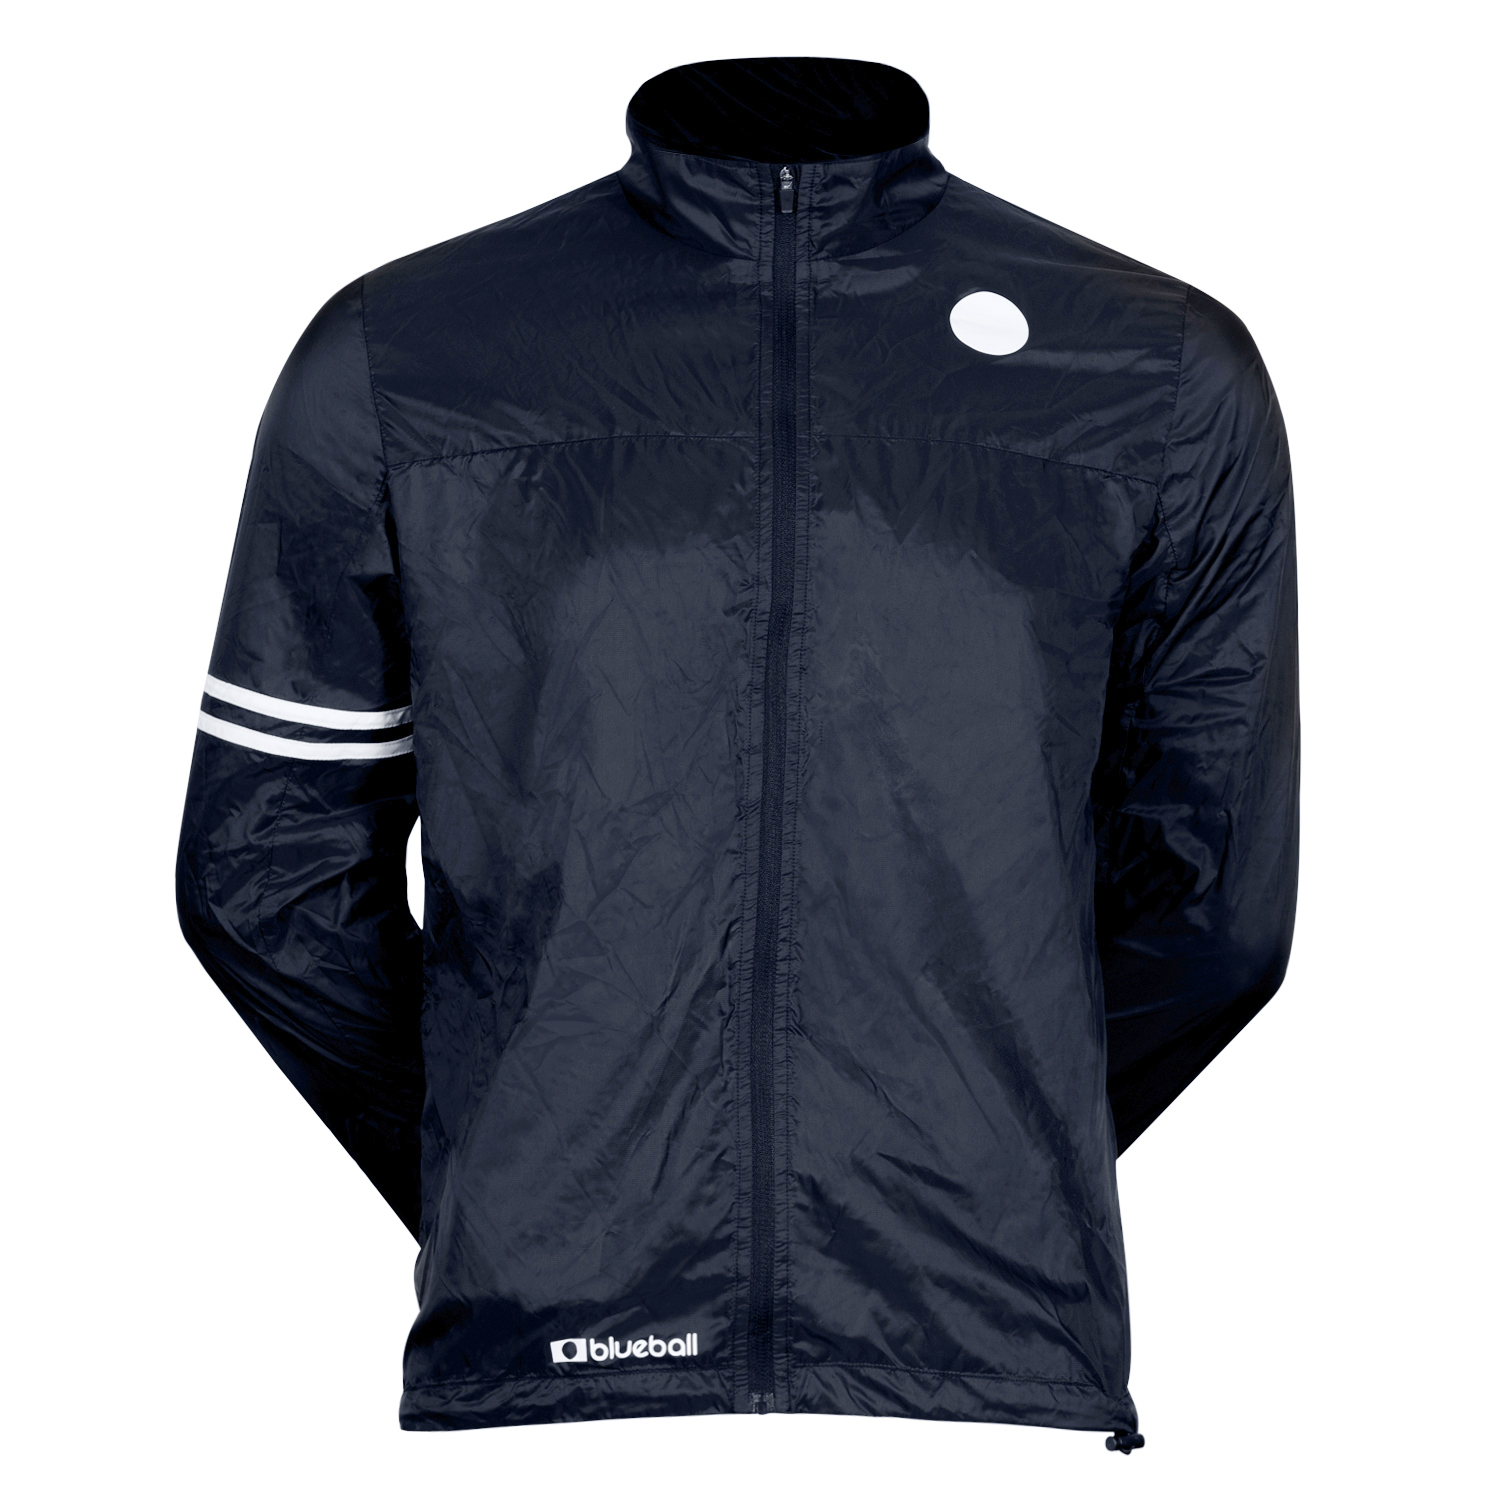 cycling windbreaker jacket without hood